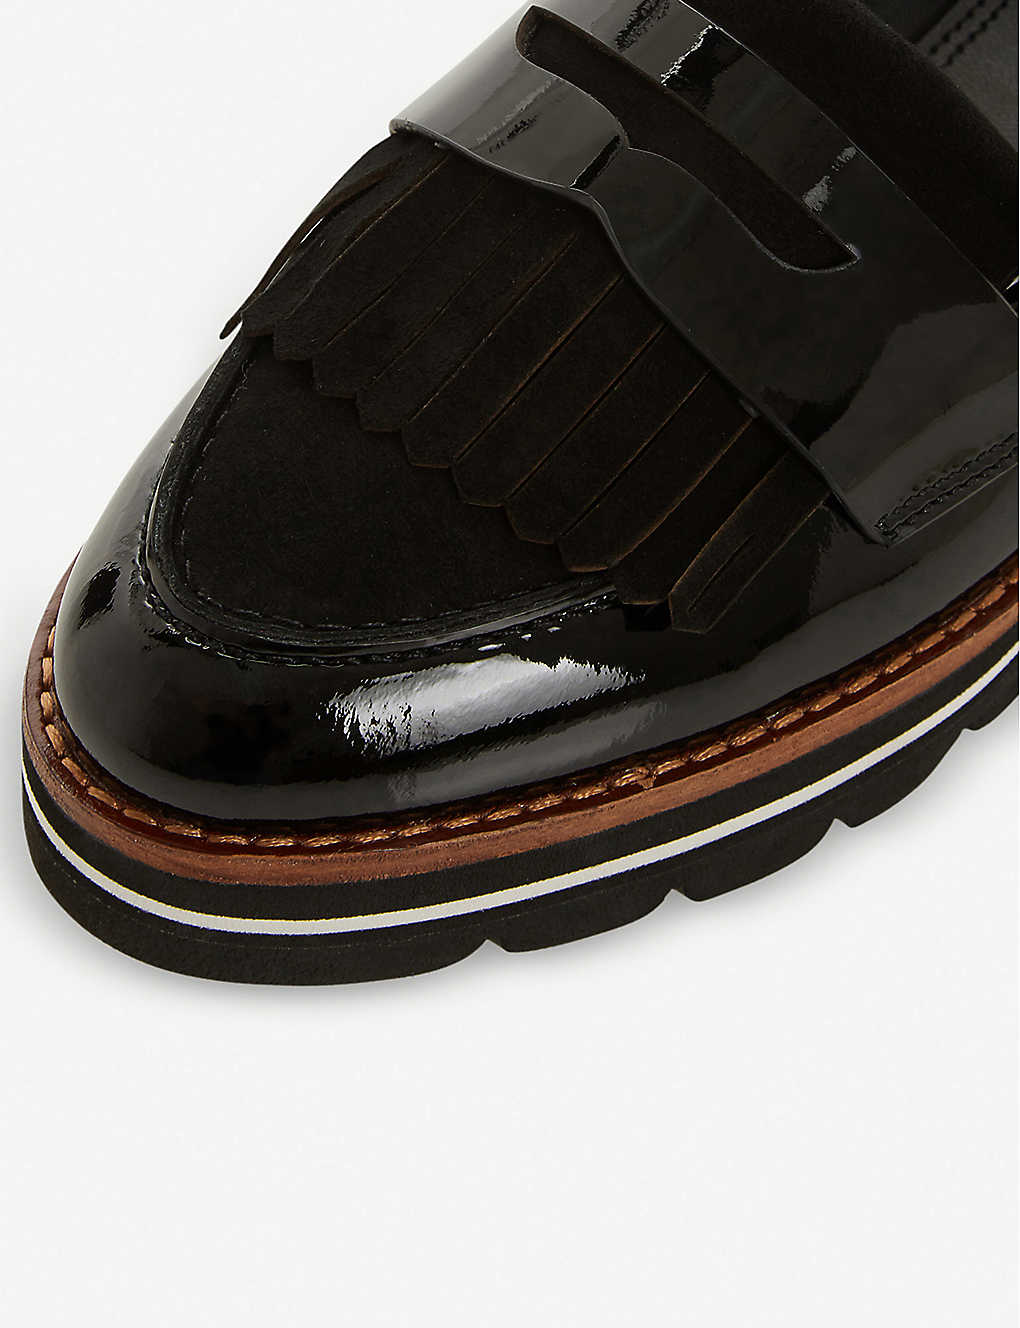 94655d49fba ... Gracella flatform leather loafers - Black ...